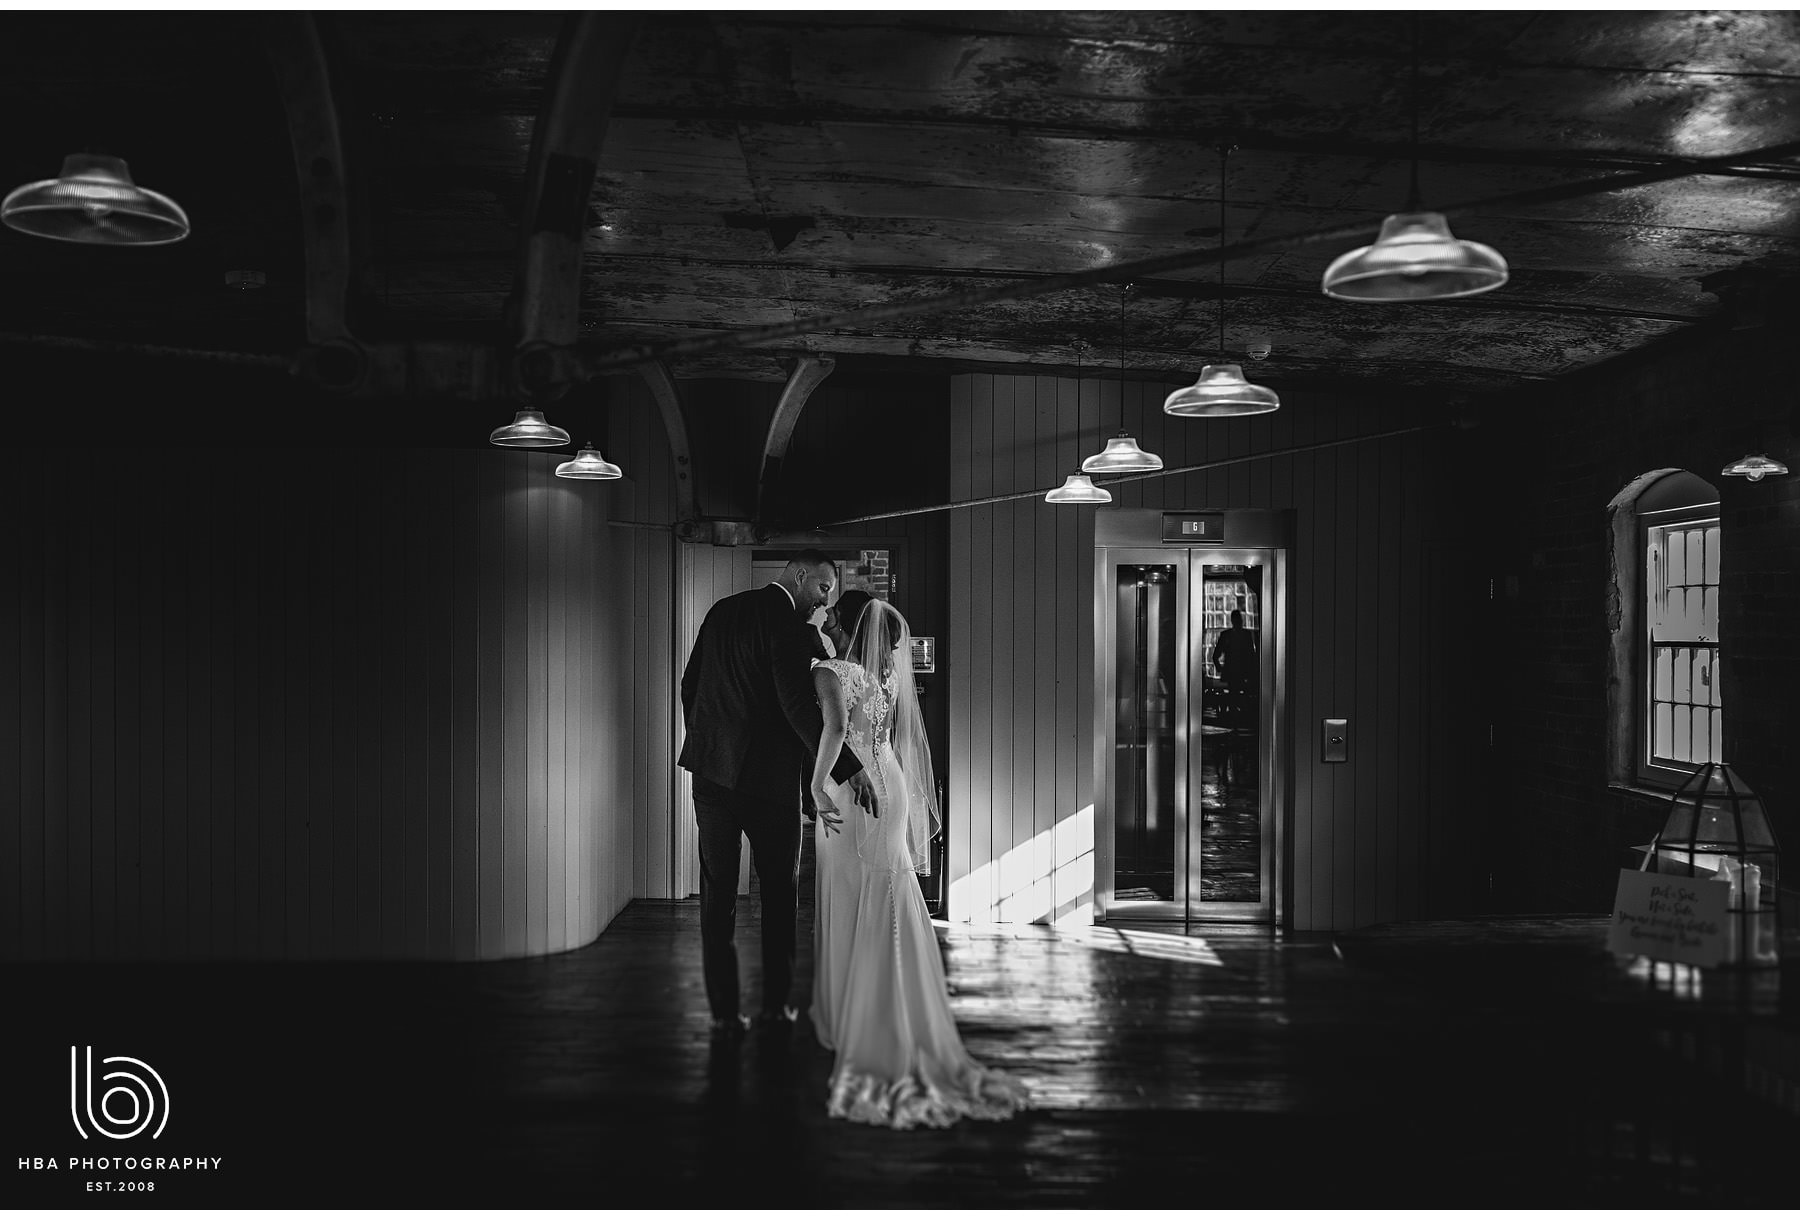 West_mill_industrial_Wedding_Venue_Alternative_Wedding_Photography_